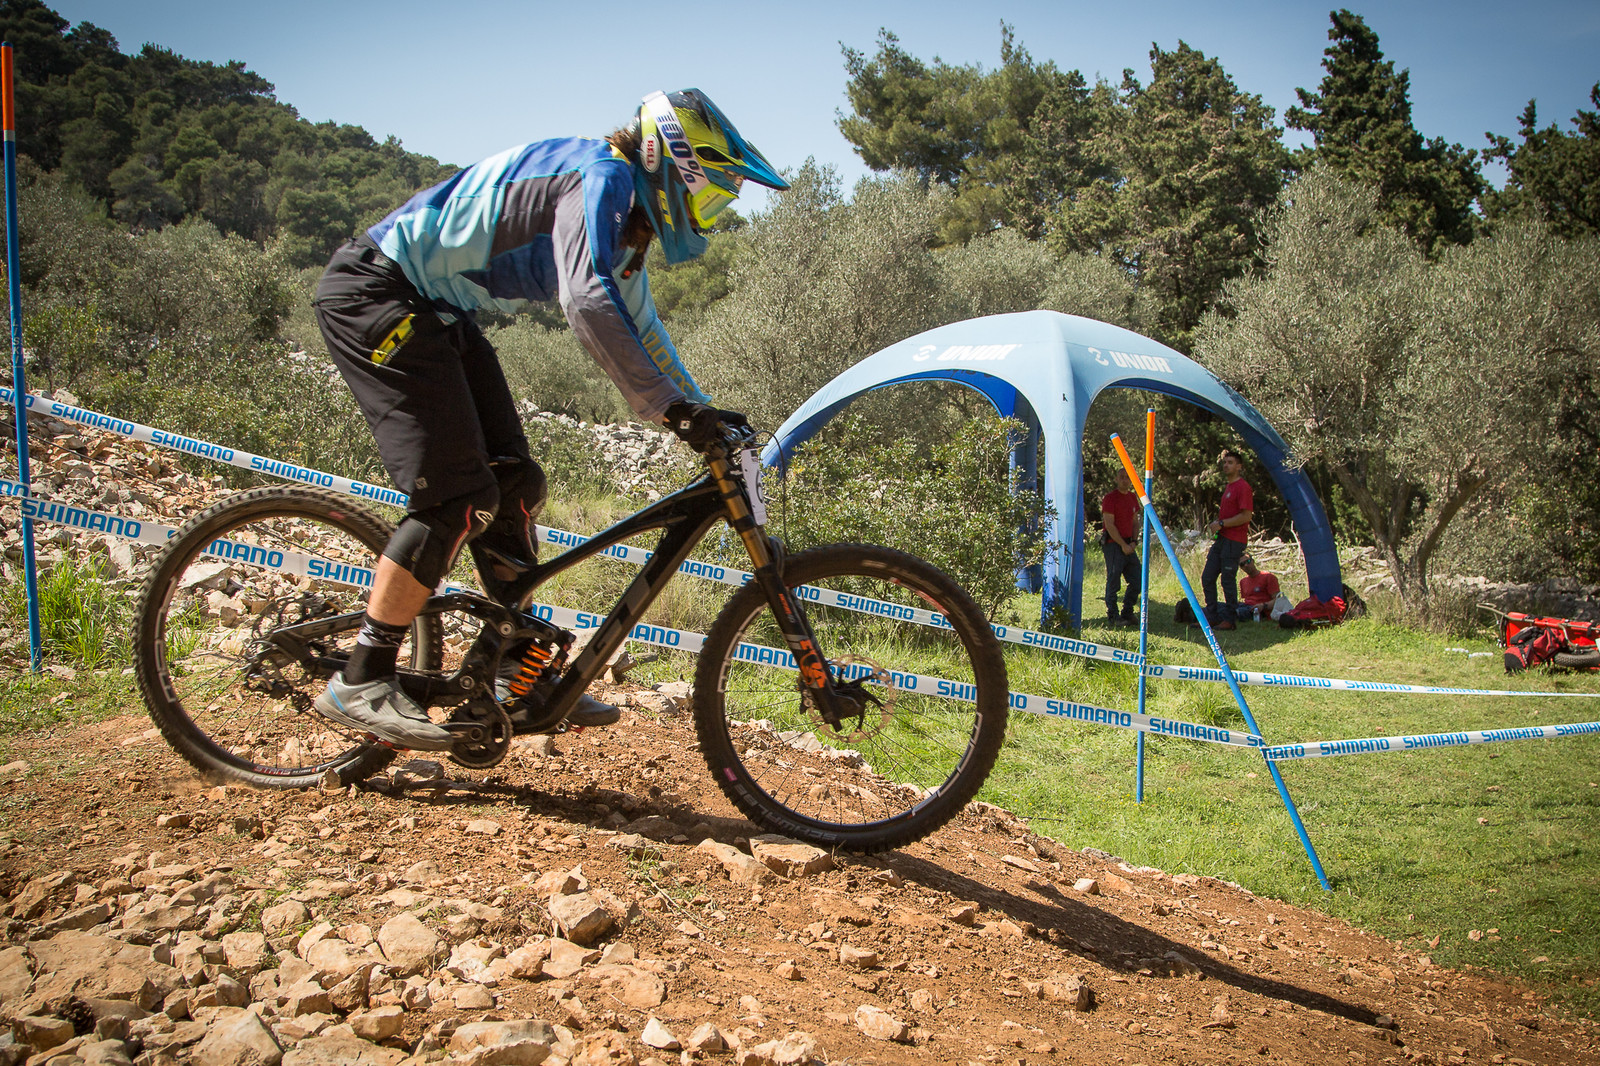 Wyn's Prototype GT Getting a Workout - G-Out Project - Croatia World Cup DH - Mountain Biking Pictures - Vital MTB